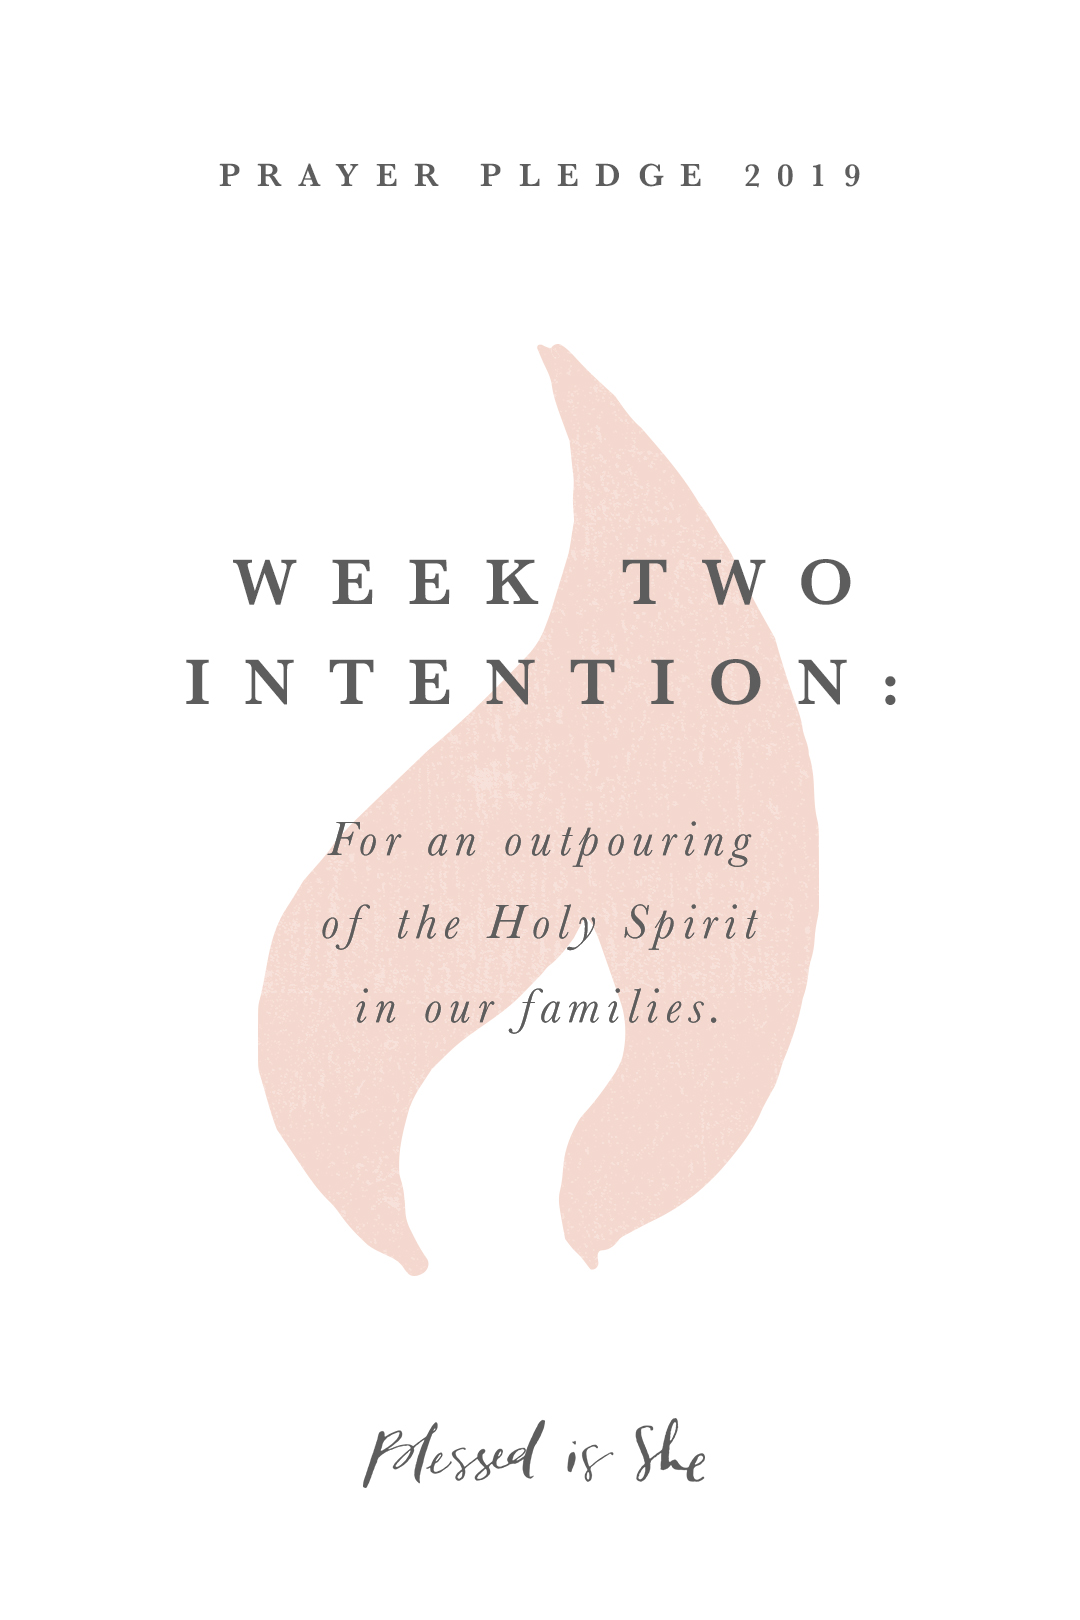 2019 prayer pledge week two intention